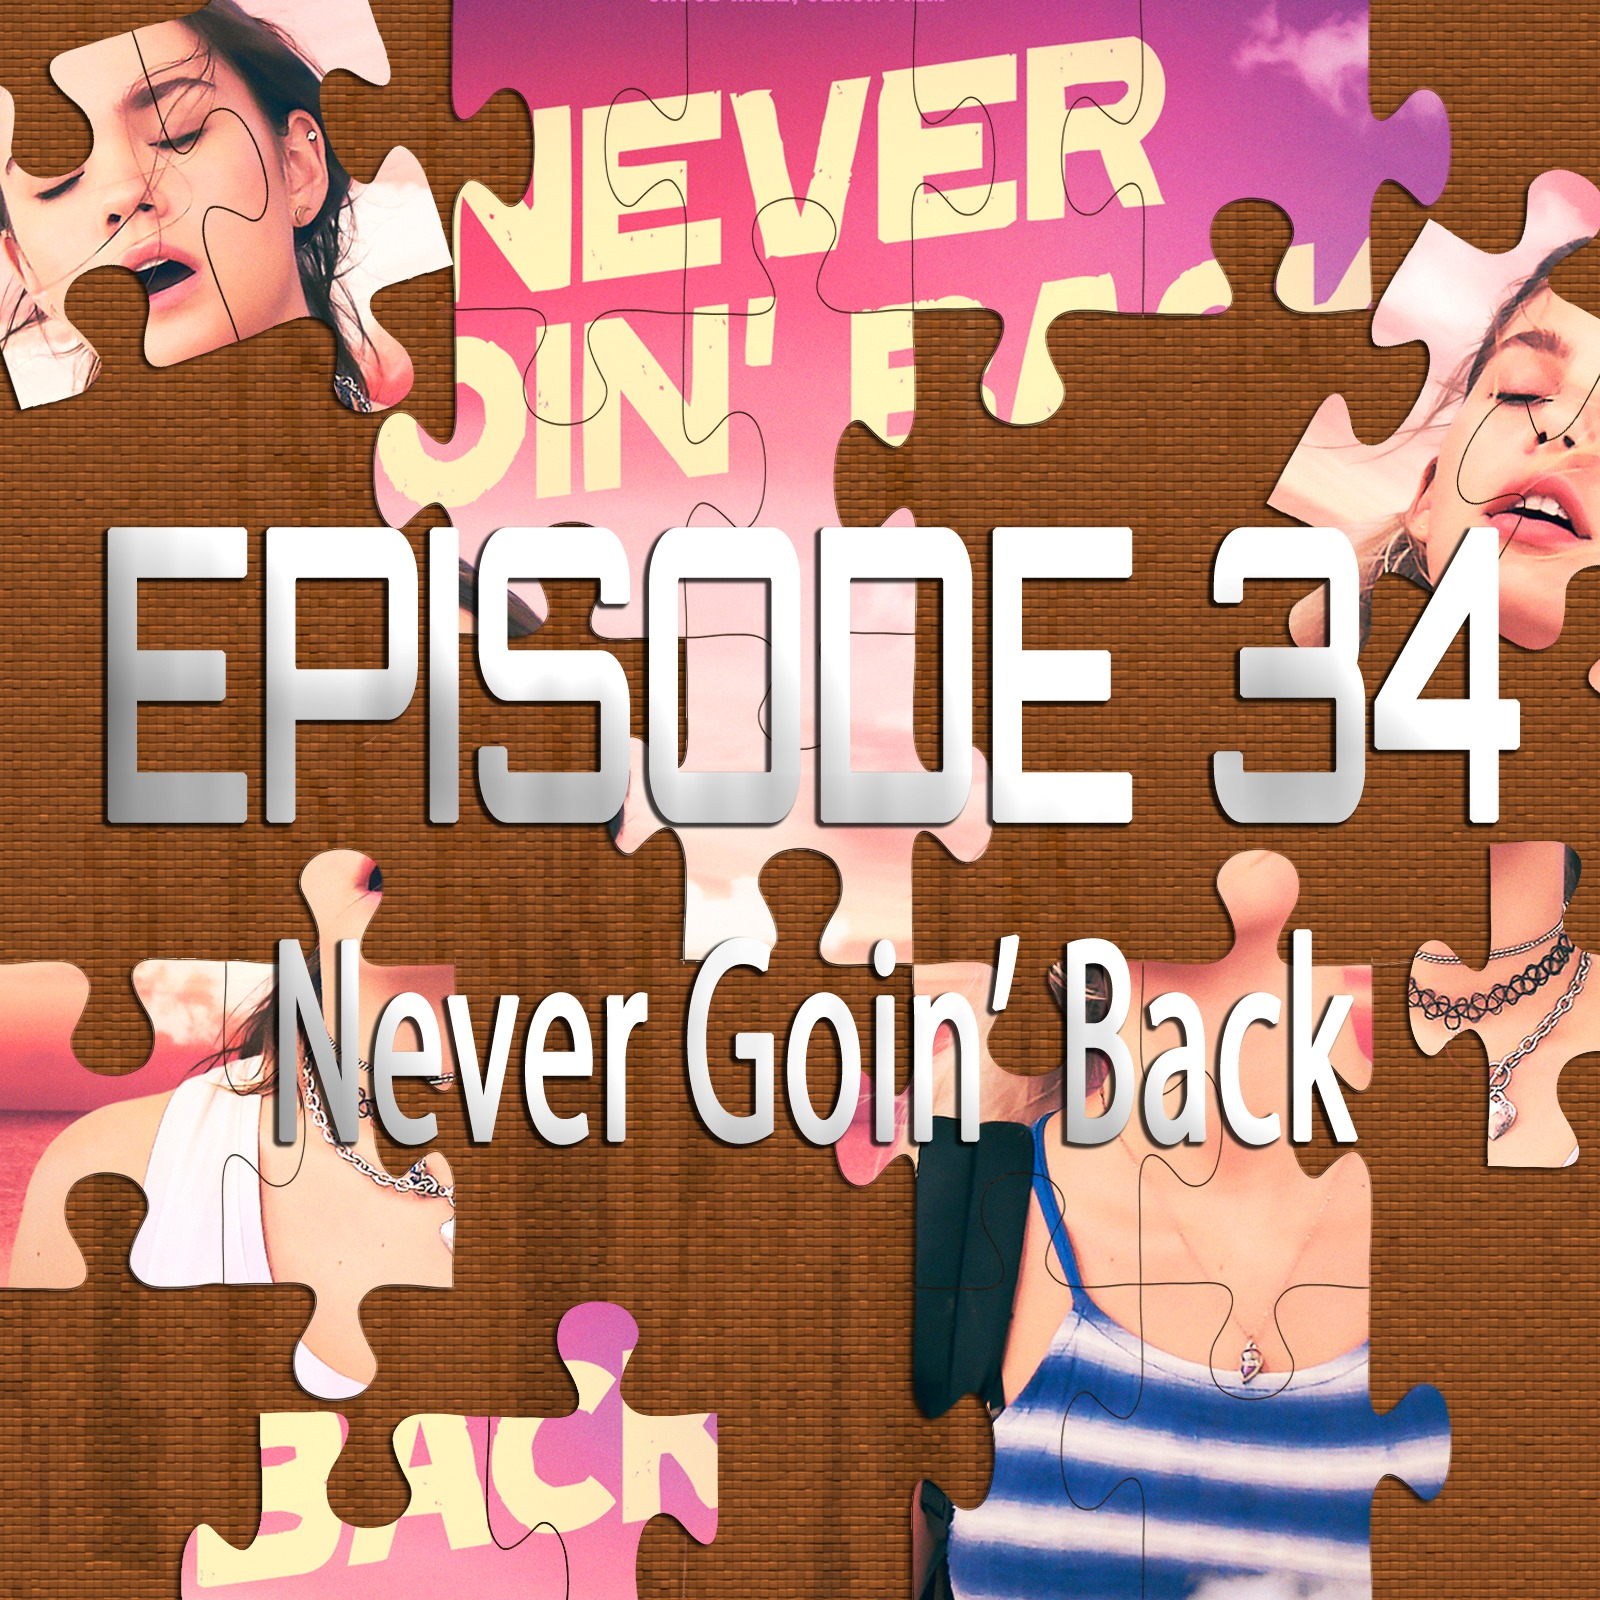 Never Goin' Back (Featuring Josh Bell)